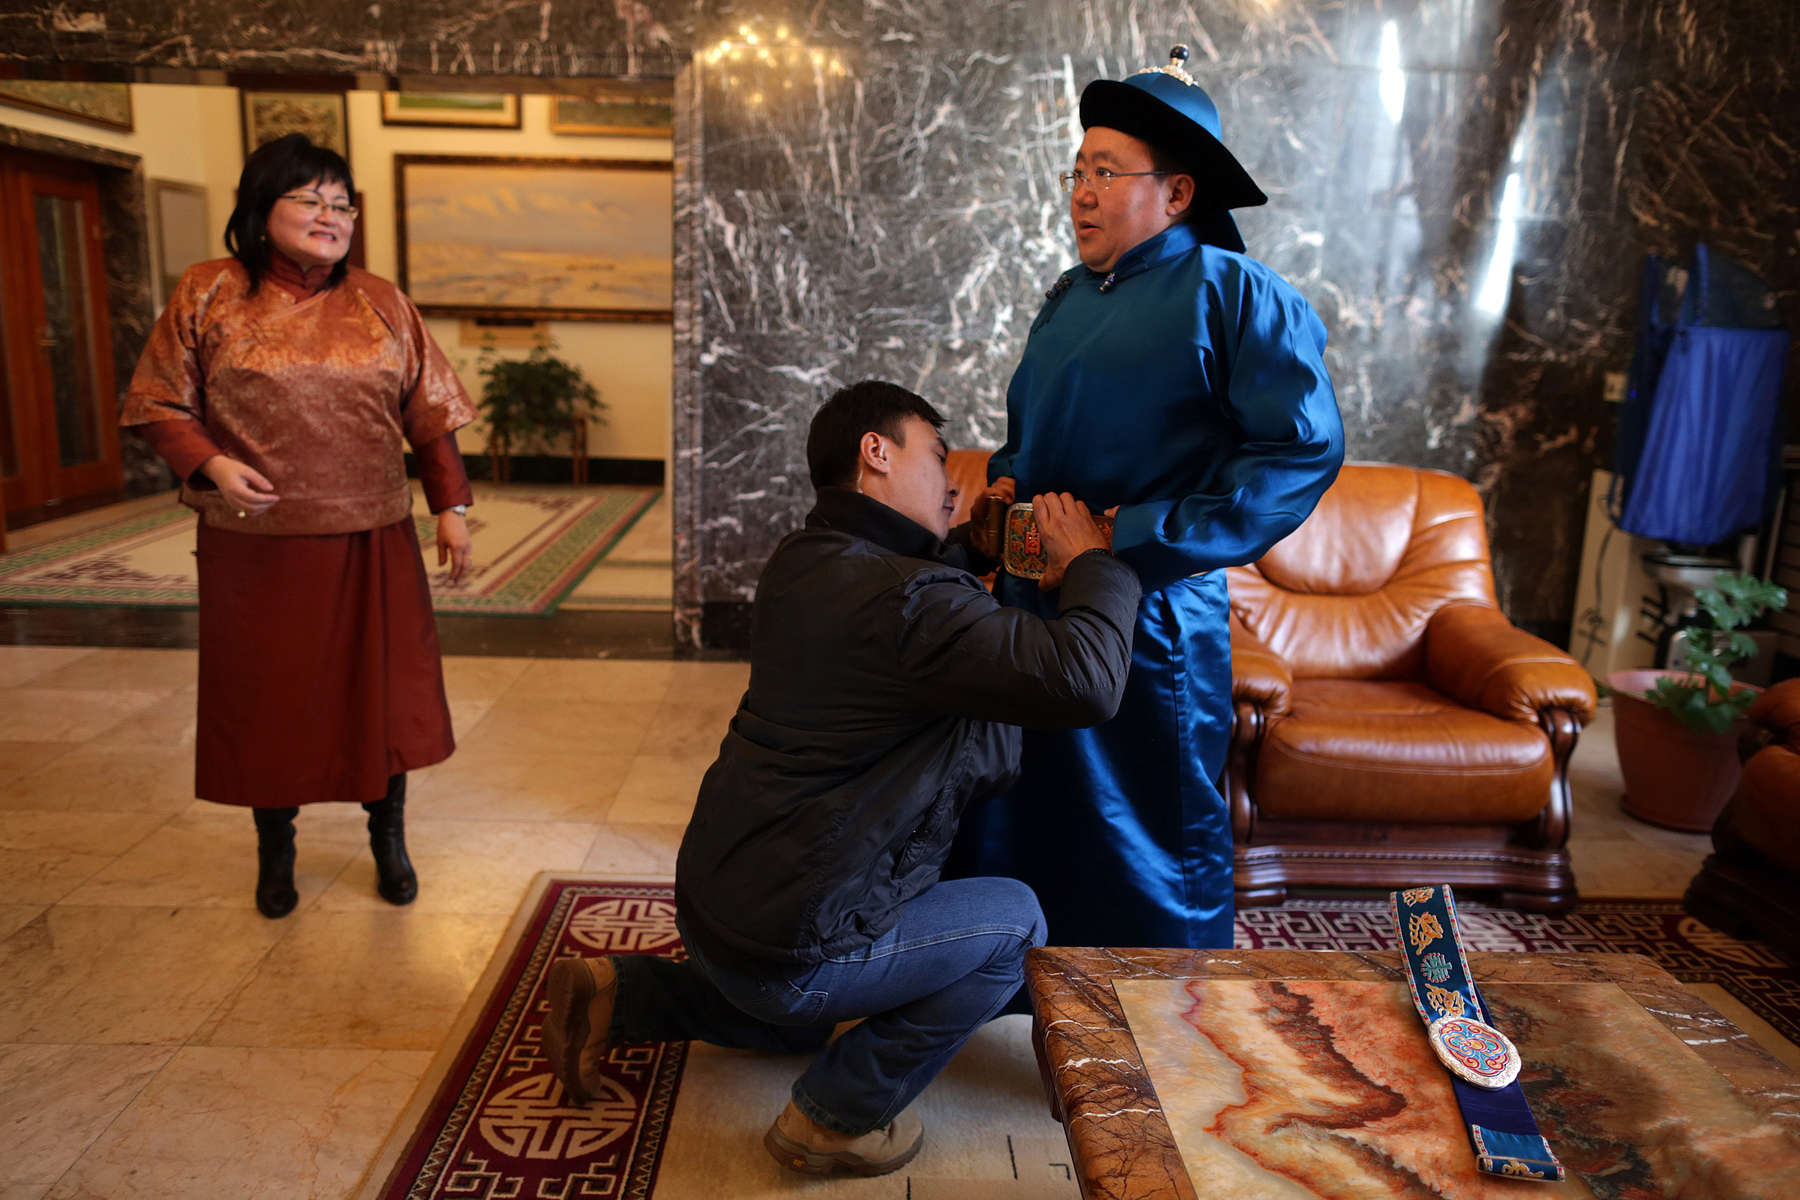 ULAANBATAAR, MONGOLIA - OCTOBER 26: The first lady, Bolormaa Khajidsuren watches her husband President Tsakhiagiin Elbegdorj  get dressed to go horsebackriding on the estate October 26, 2012 in Ulaanbataar, Mongolia. President Tsakhiagiin Elbegdorj was elected  on May 25, 2009, he had previously served two terms as PrimeMinister and held the positions of Deputy Speaker and Majority Leader in Parliament. The first lady, Bolormaa Khajidsuren is a mother of 4 children, and the extended Presidential family includes 20 foster children coming from a variety of government children's homes. Some 100 years ago, Mongolia gained independence from Qing China, and more than 20 years ago it removed itself from the Soviet Bloc. Since then, the country has been undergoing massive social, economic and political changes. The Oyu Tolgoi copper and gold mine is Mongolia's biggest foreign investment project to date adding an estimated 35% value to the country's GDP. Mongolia is a land of amazing contrasts and is the most sparsely populated country on earth with fewer than 3 million people. (Photo by Paula Bronstein/Getty Images)